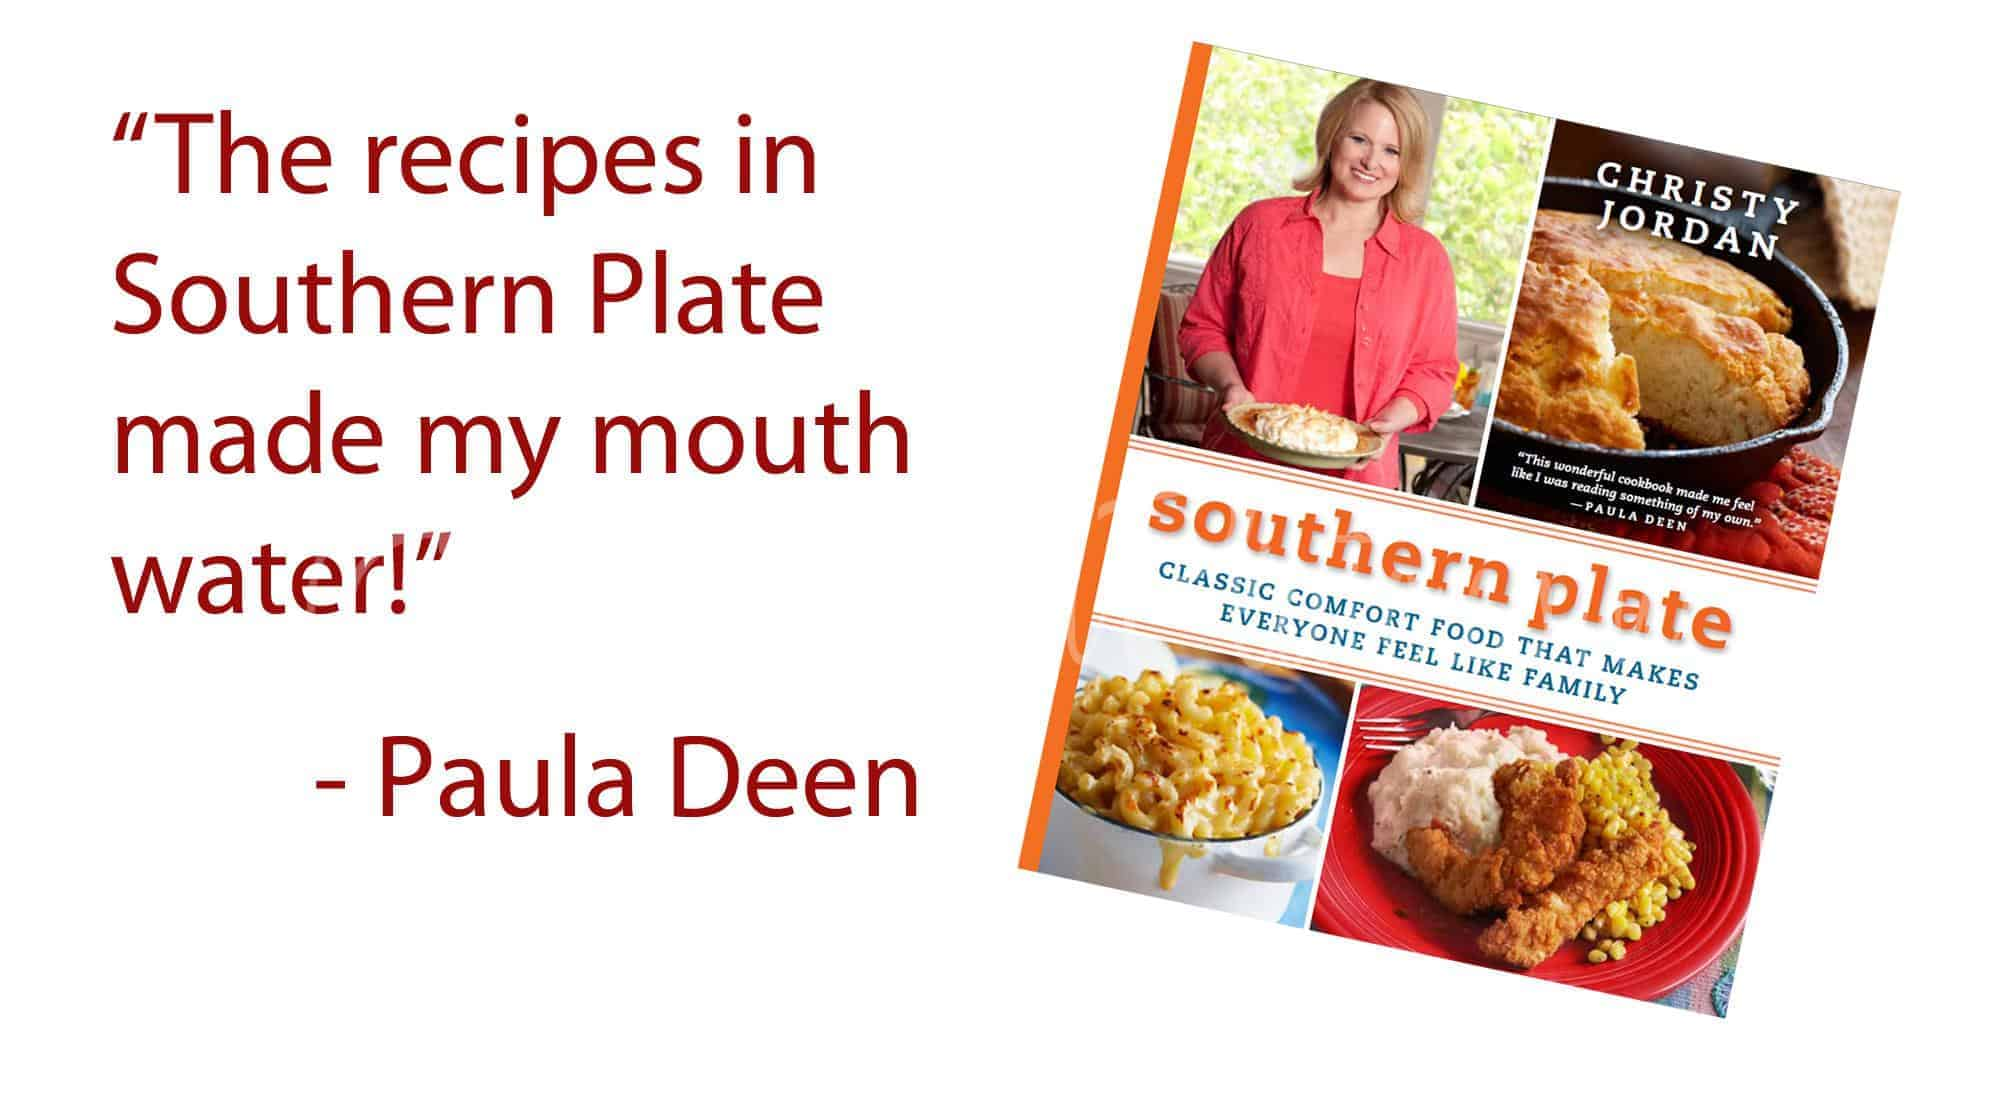 Paula Deen\'s quote about Southern Plate! | Southern Plate